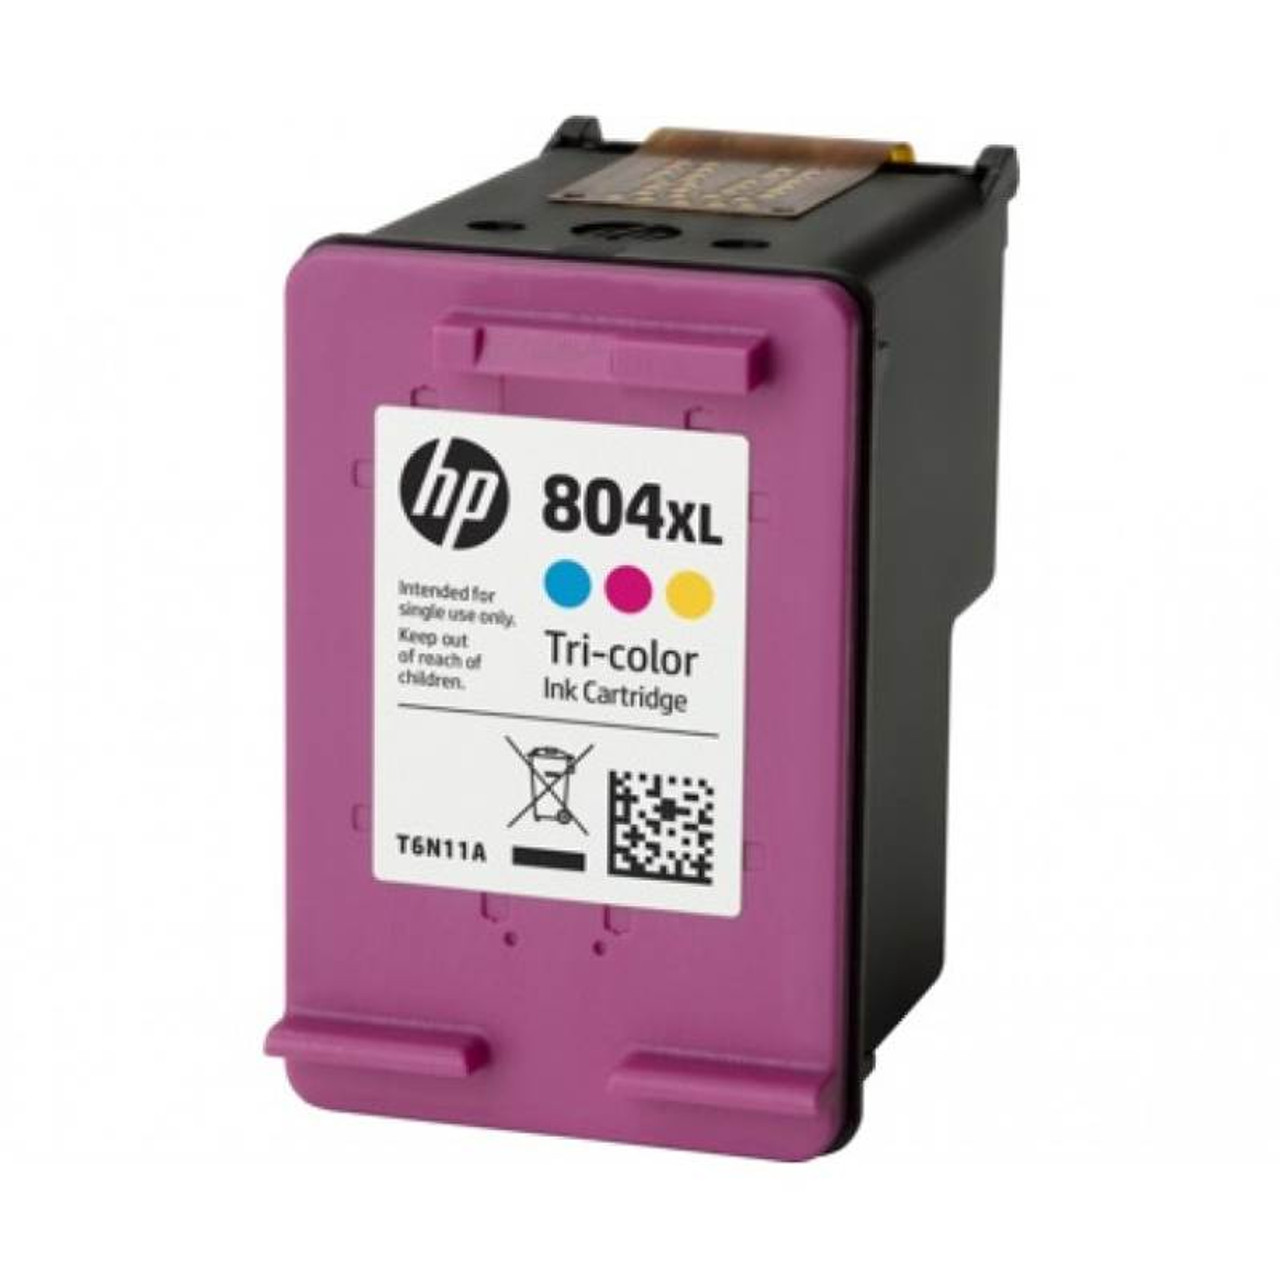 Image for HP804XL Original Ink Cartridge - Tri-Colour (T6N11AA) CX Computer Superstore